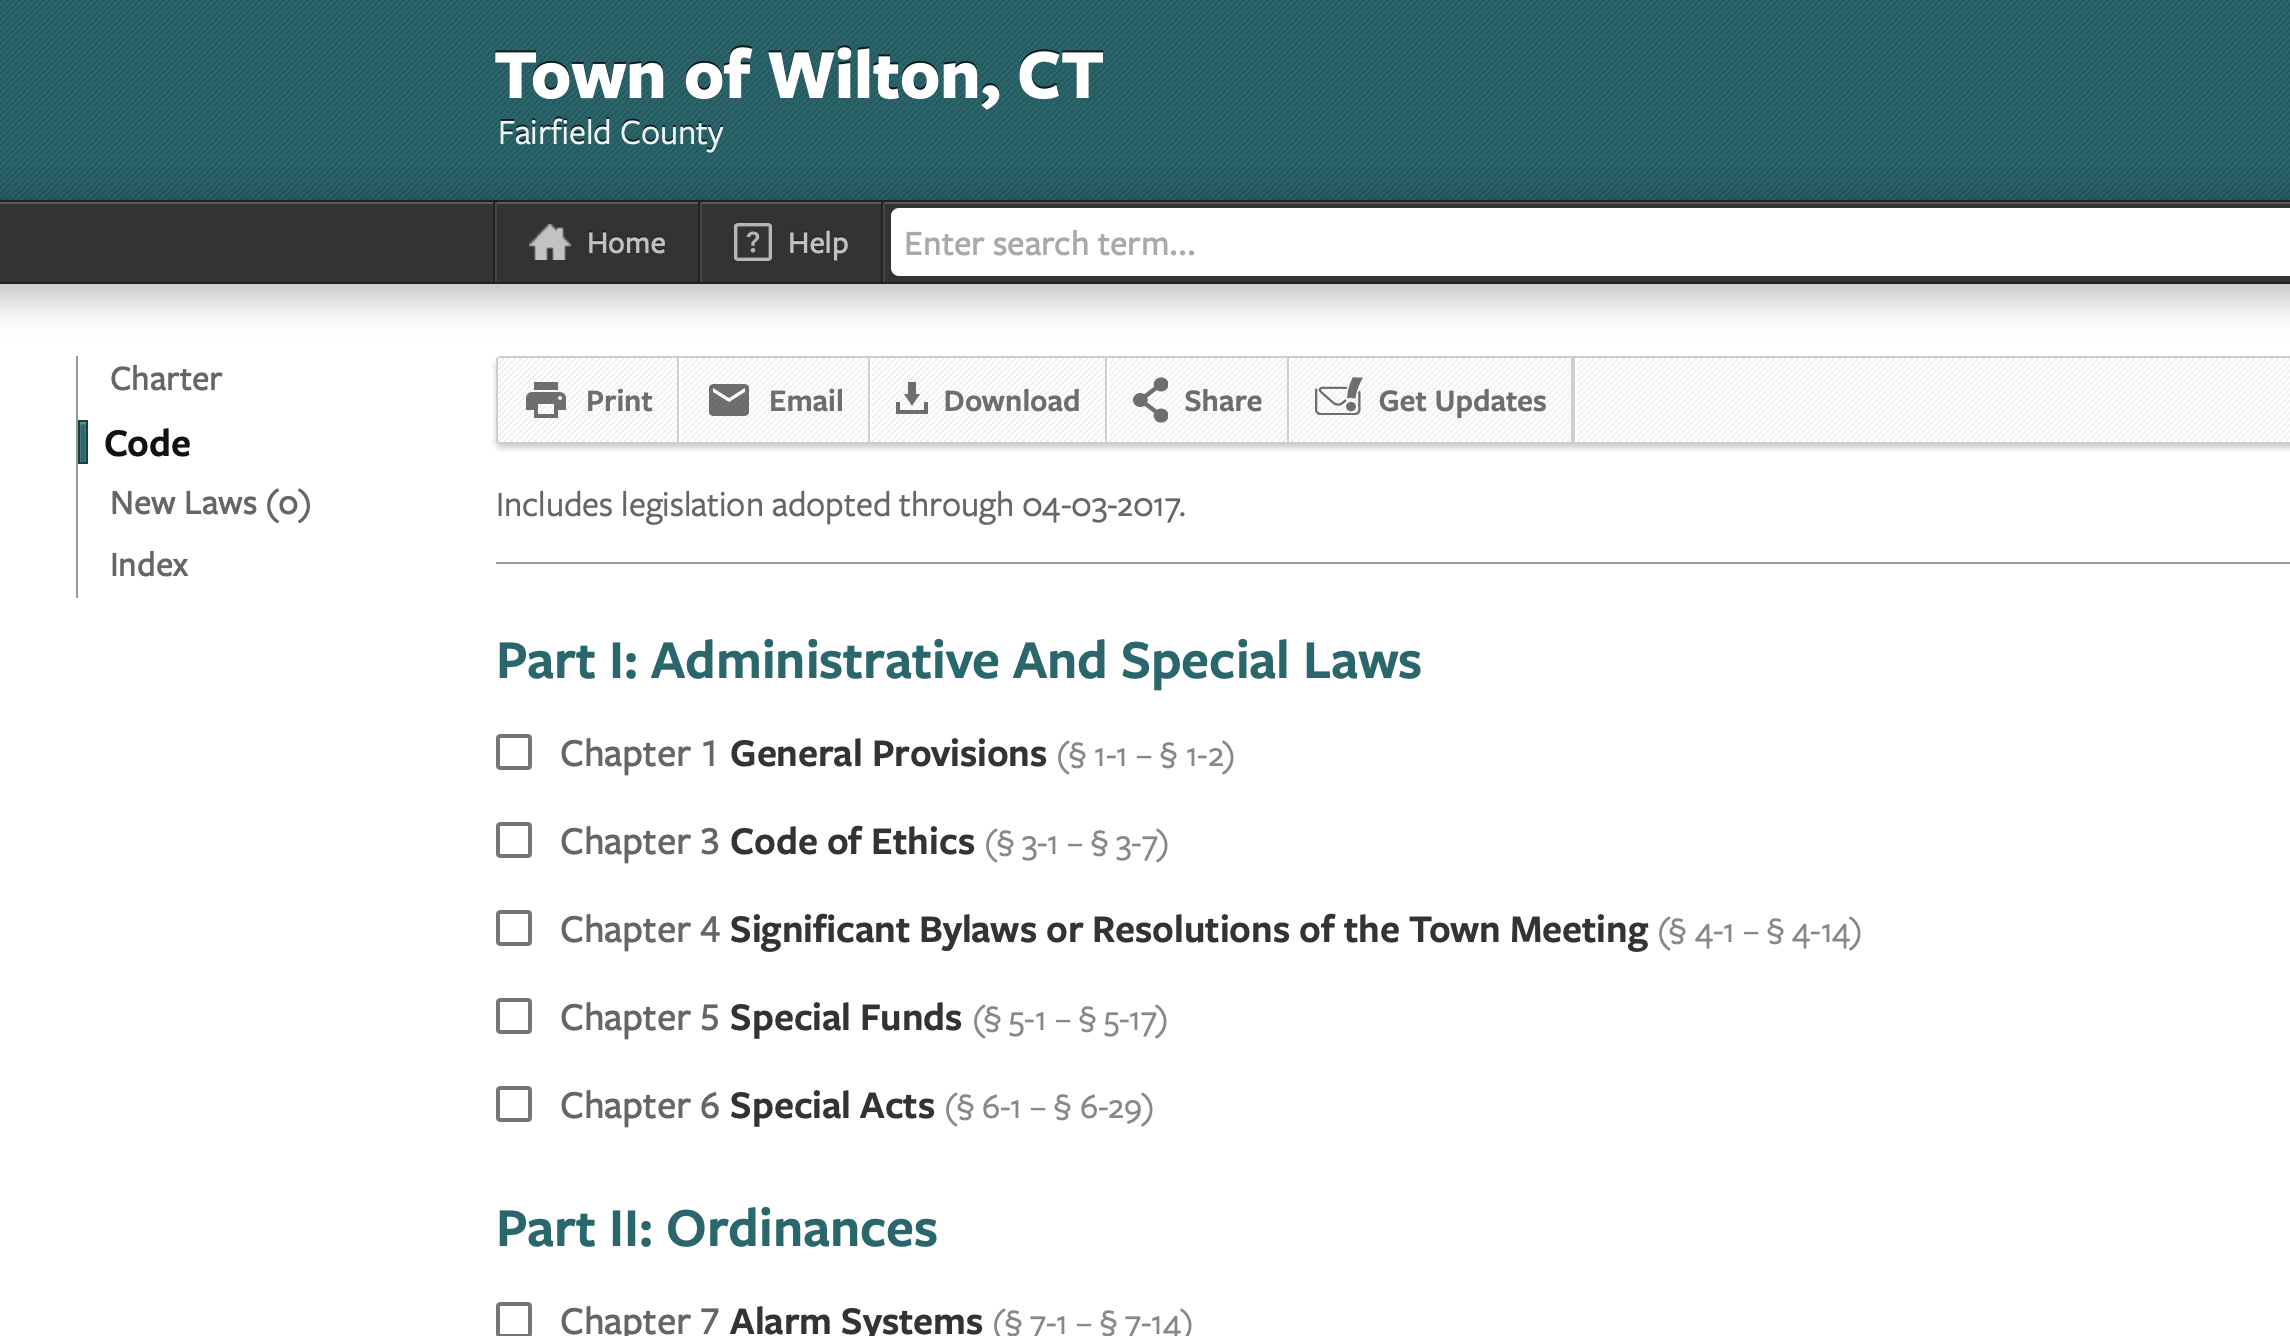 Town Publishes 'Better' Searchable Charter and Ordinances Online